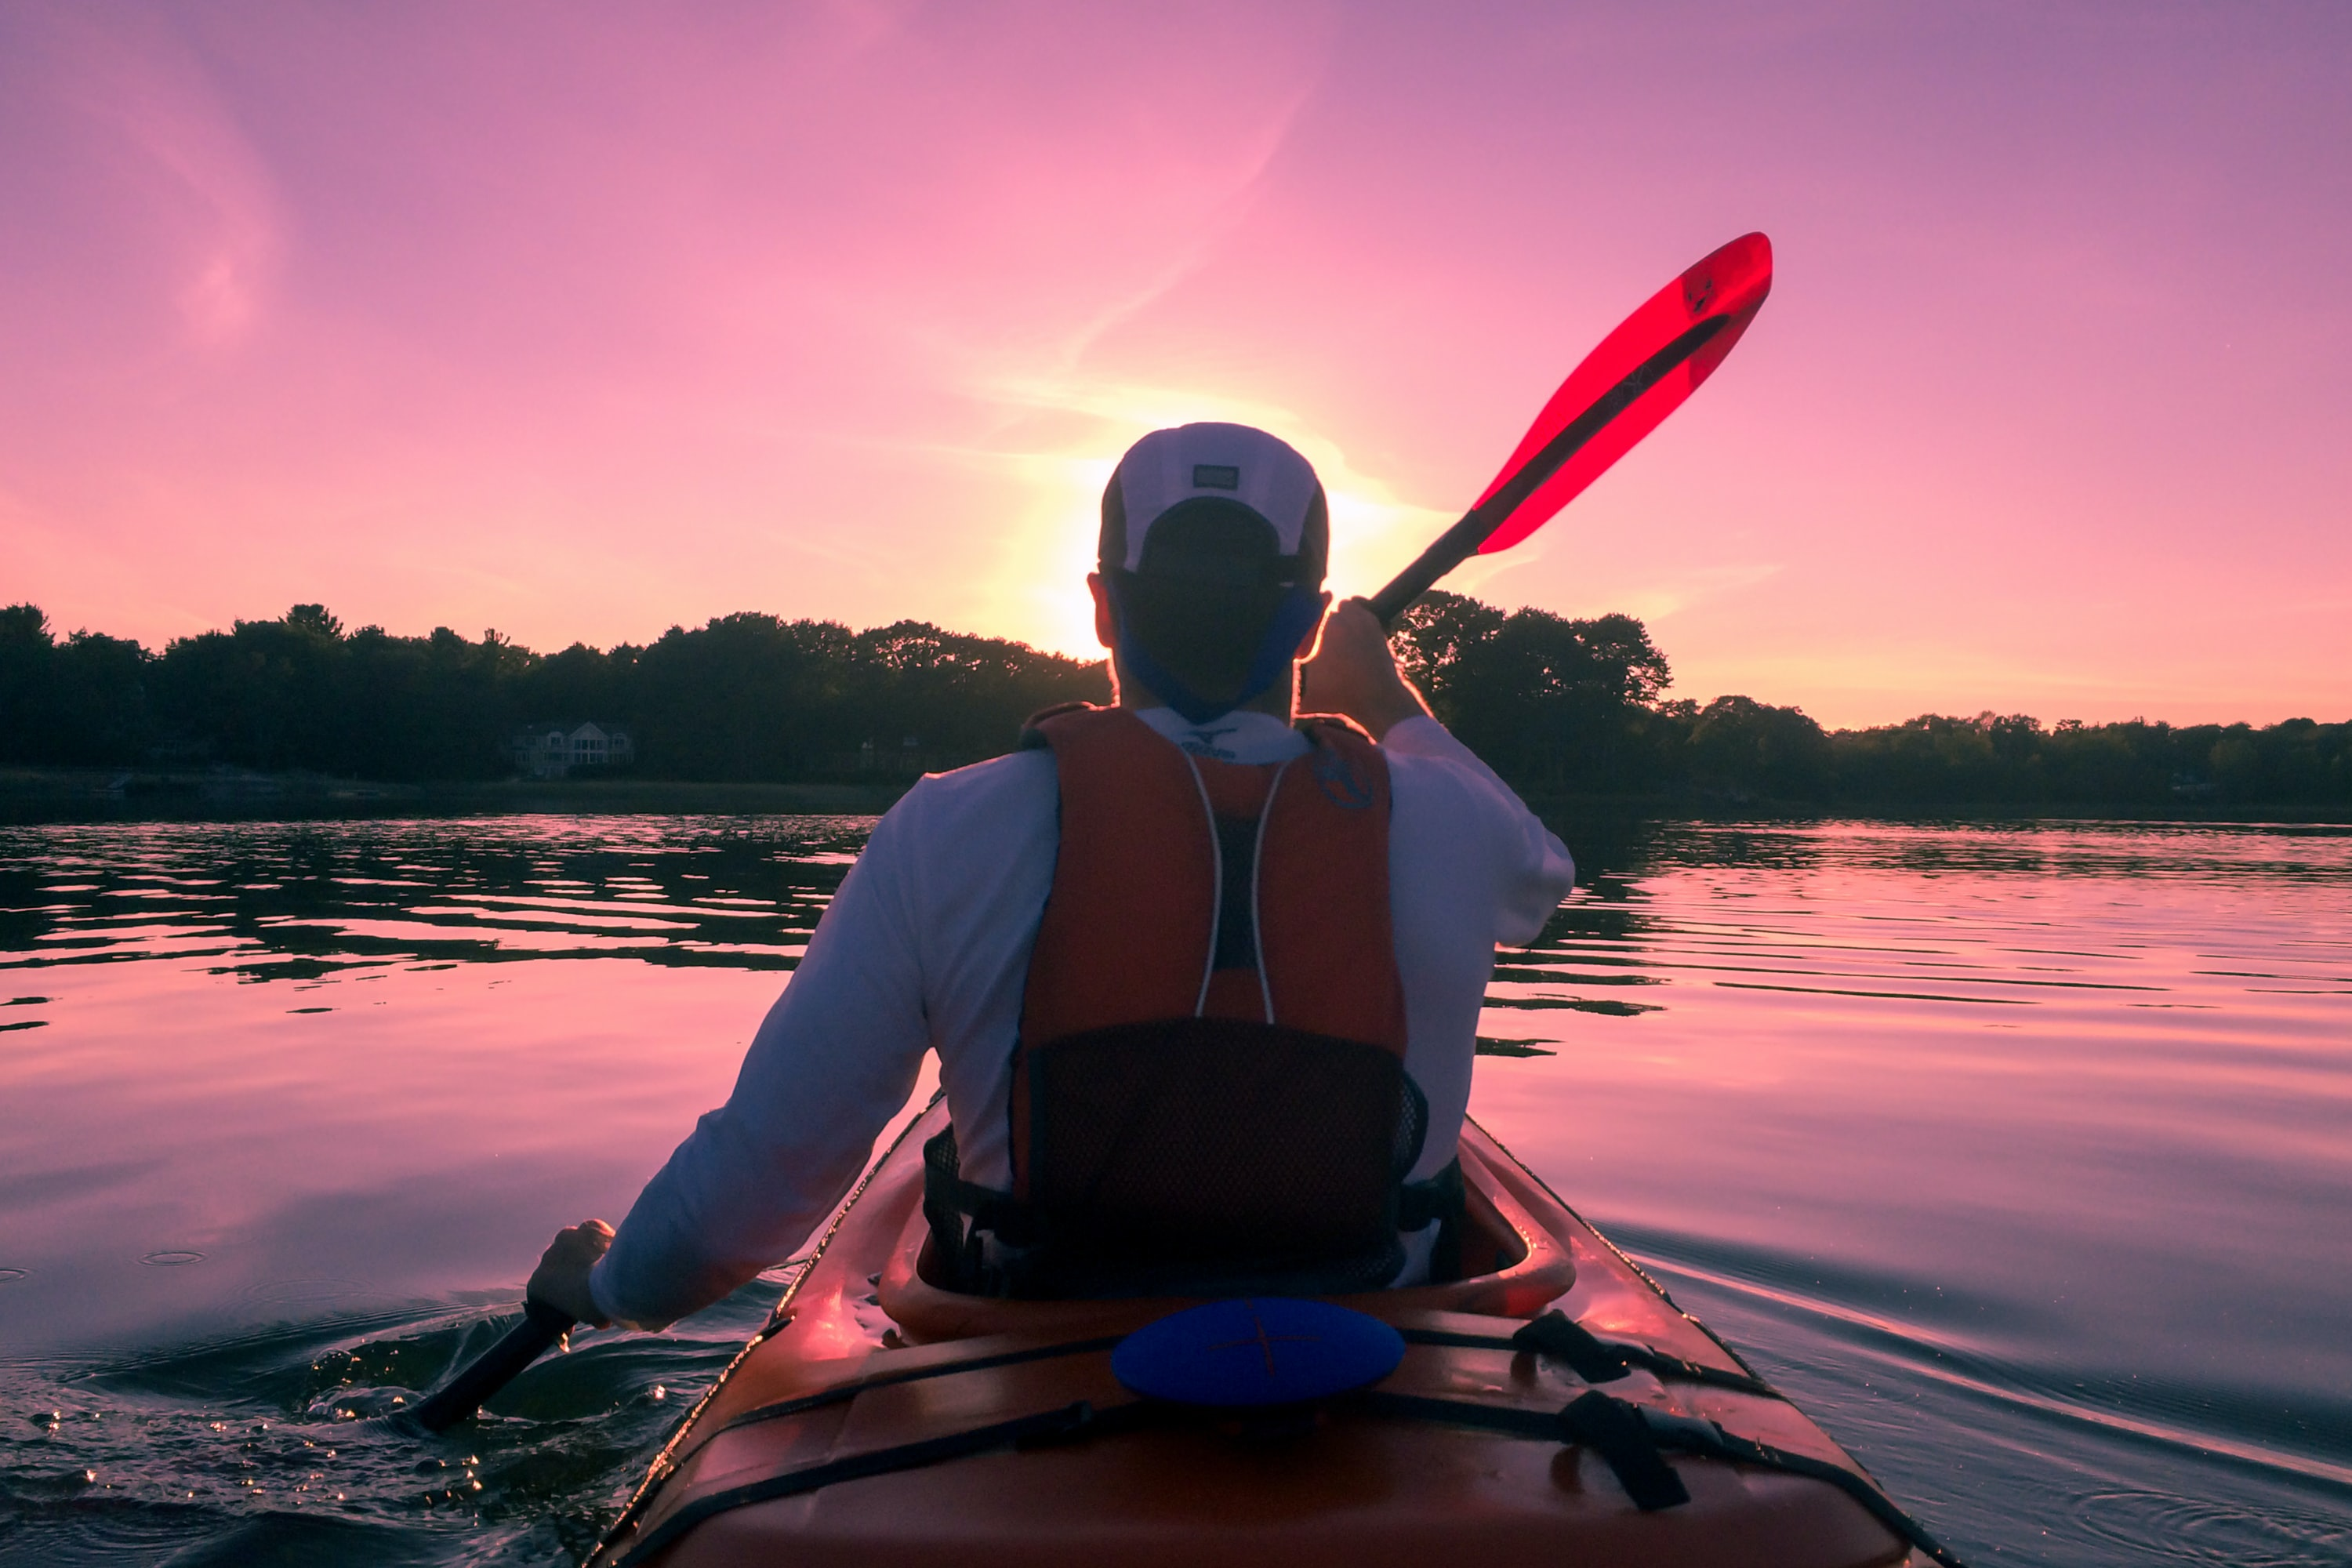 A man in a lifejacket rowing a kayak on a river at sunset